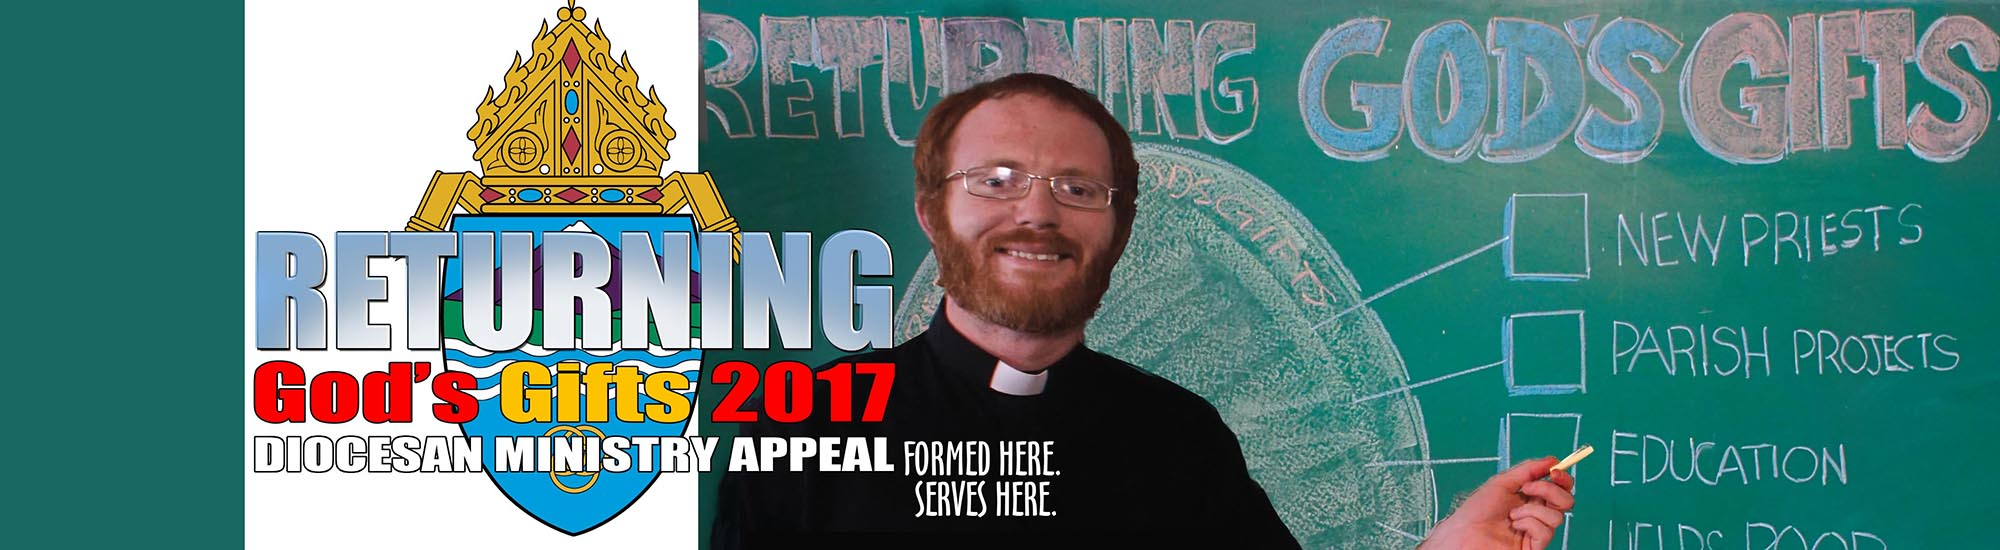 Returning God's GIfts Appeal 2017